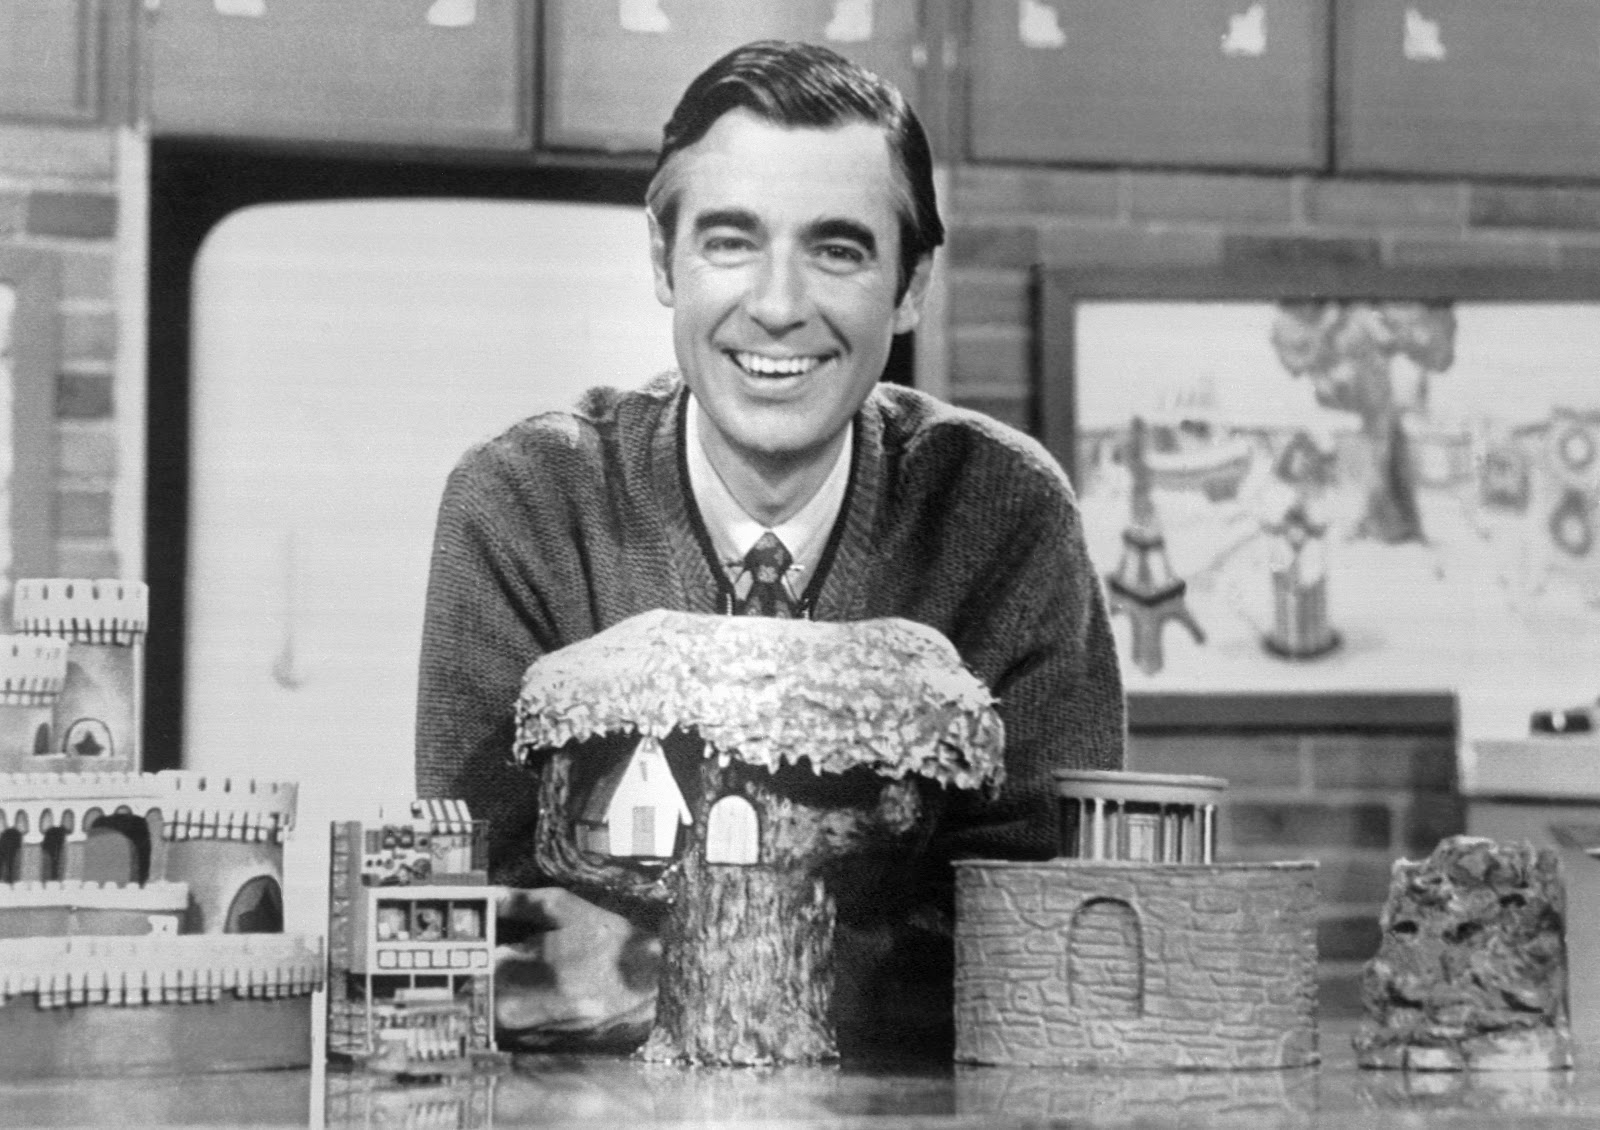 Blog Of Awesome Mister Rogers Philosophy